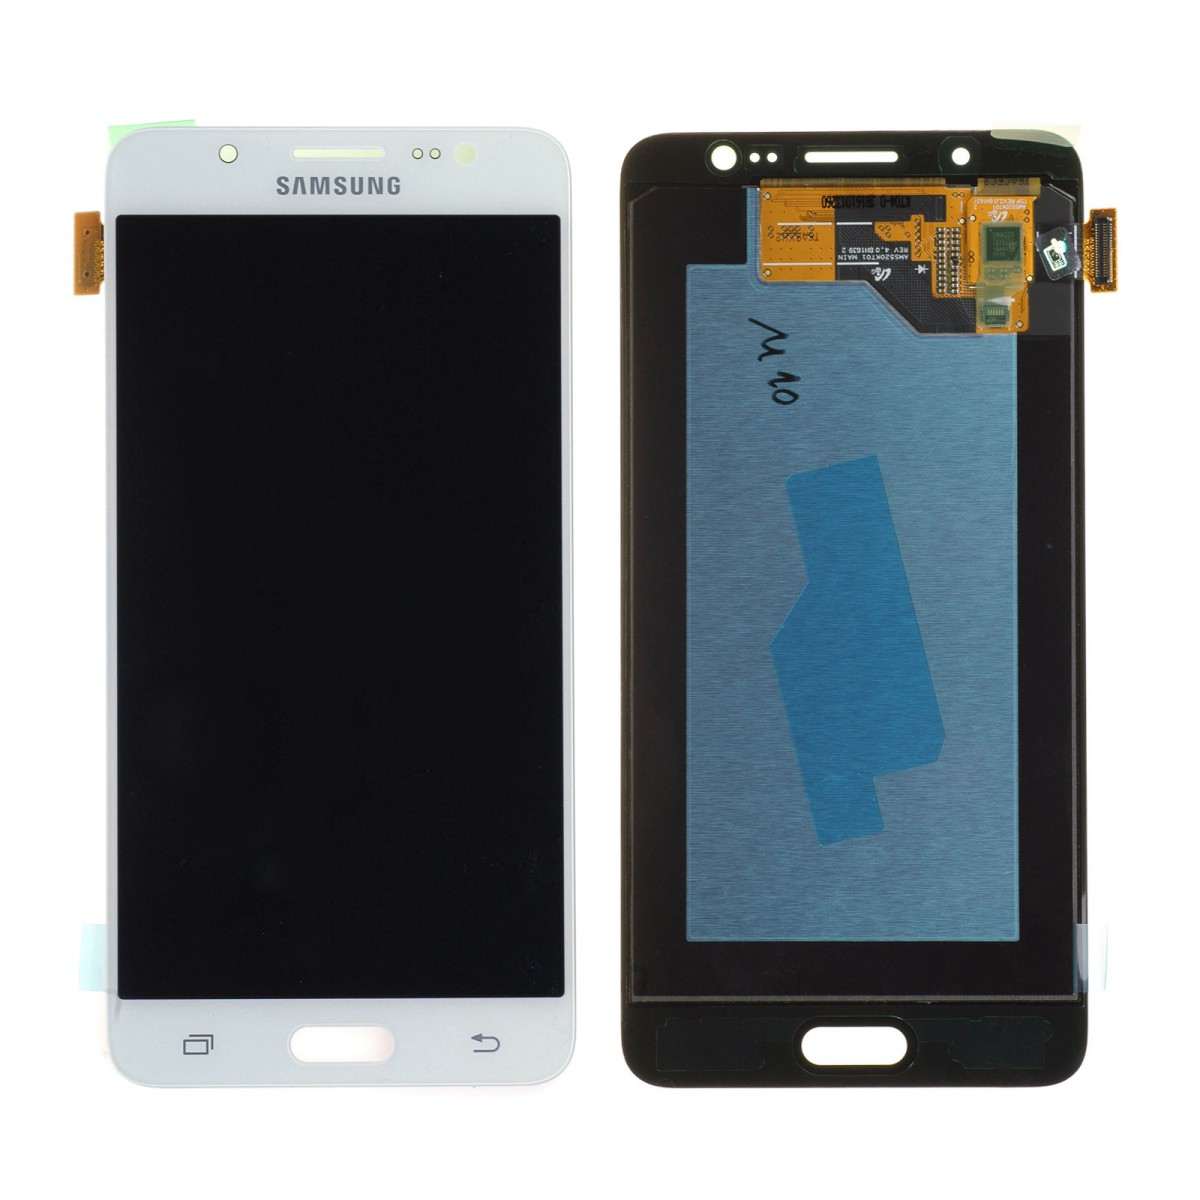 Cran samsung galaxy j5 2016 j510f blanc achat en for Photo ecran galaxy j5